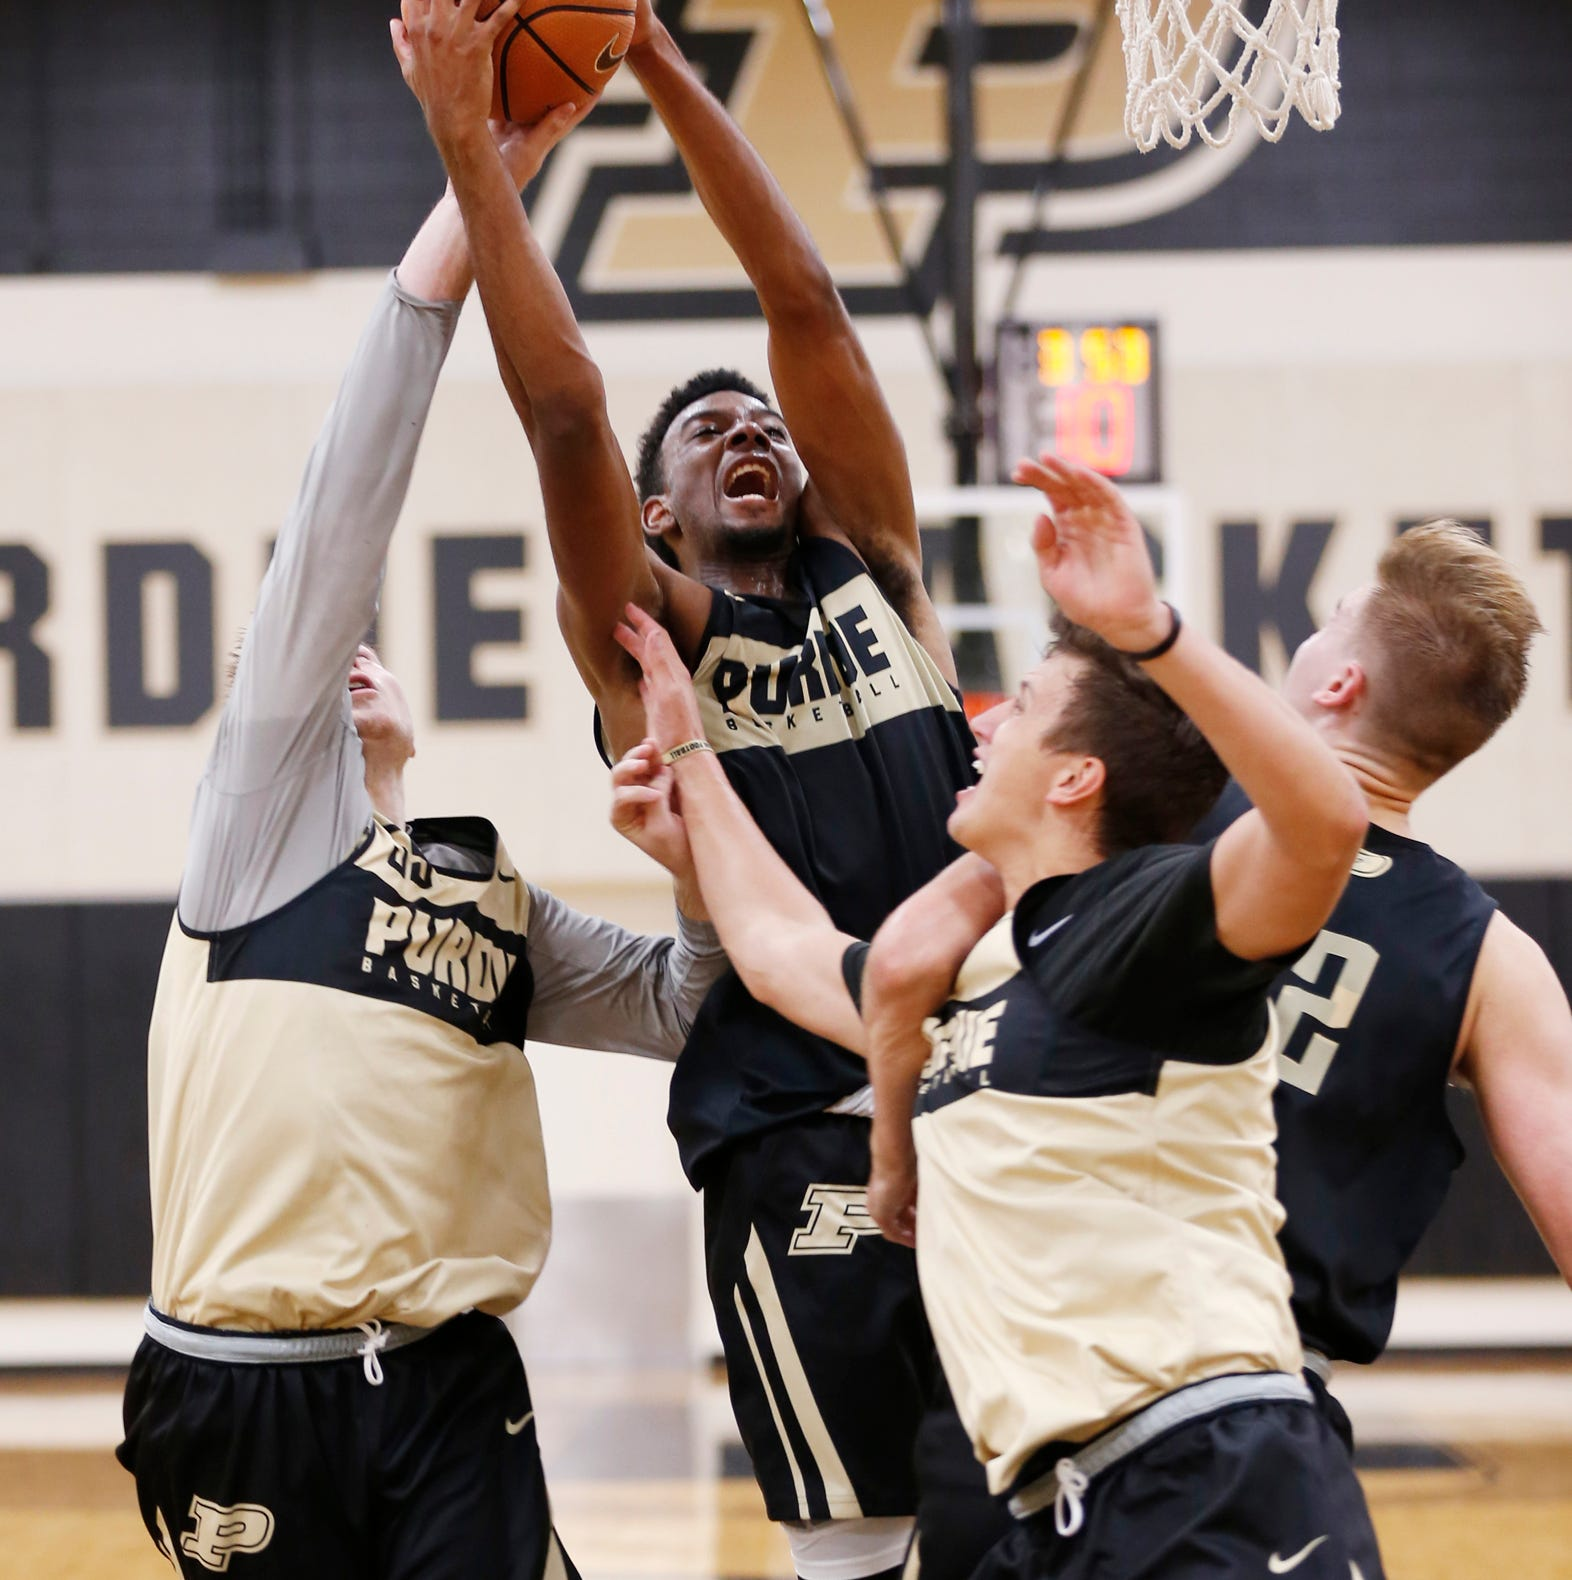 Purdue basketball arranging the puzzle pieces with 2018-19 practices underway